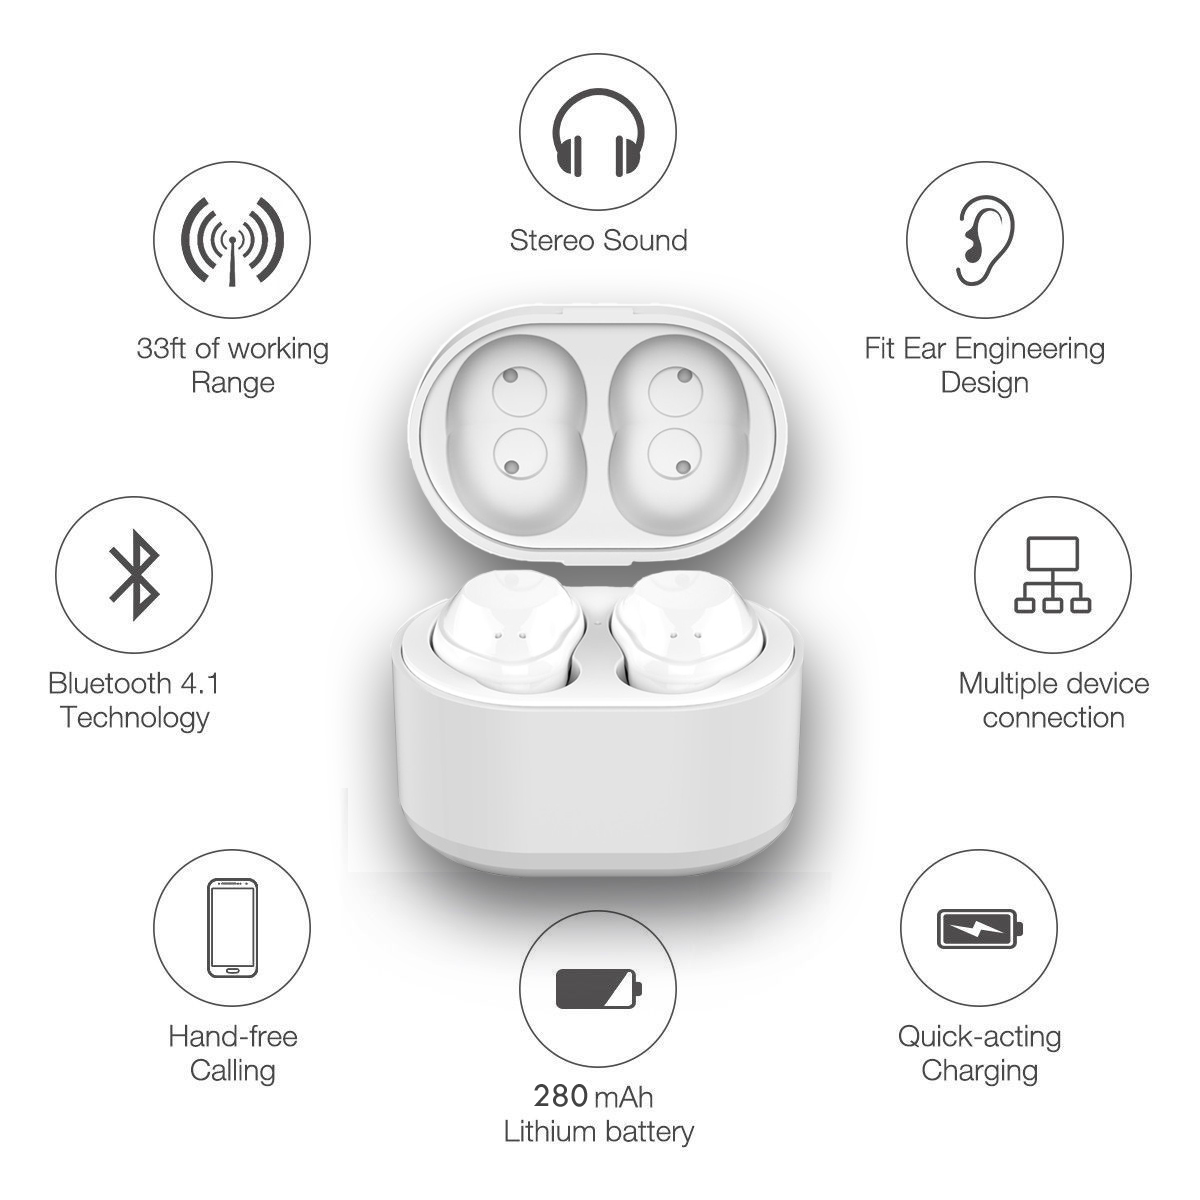 b0a59d5359e The Indigi Wireless EarPods are designed to be used with any smartphone  device. (Android or iOS) The Earbuds pair flawlessly and sync up when  playing music.